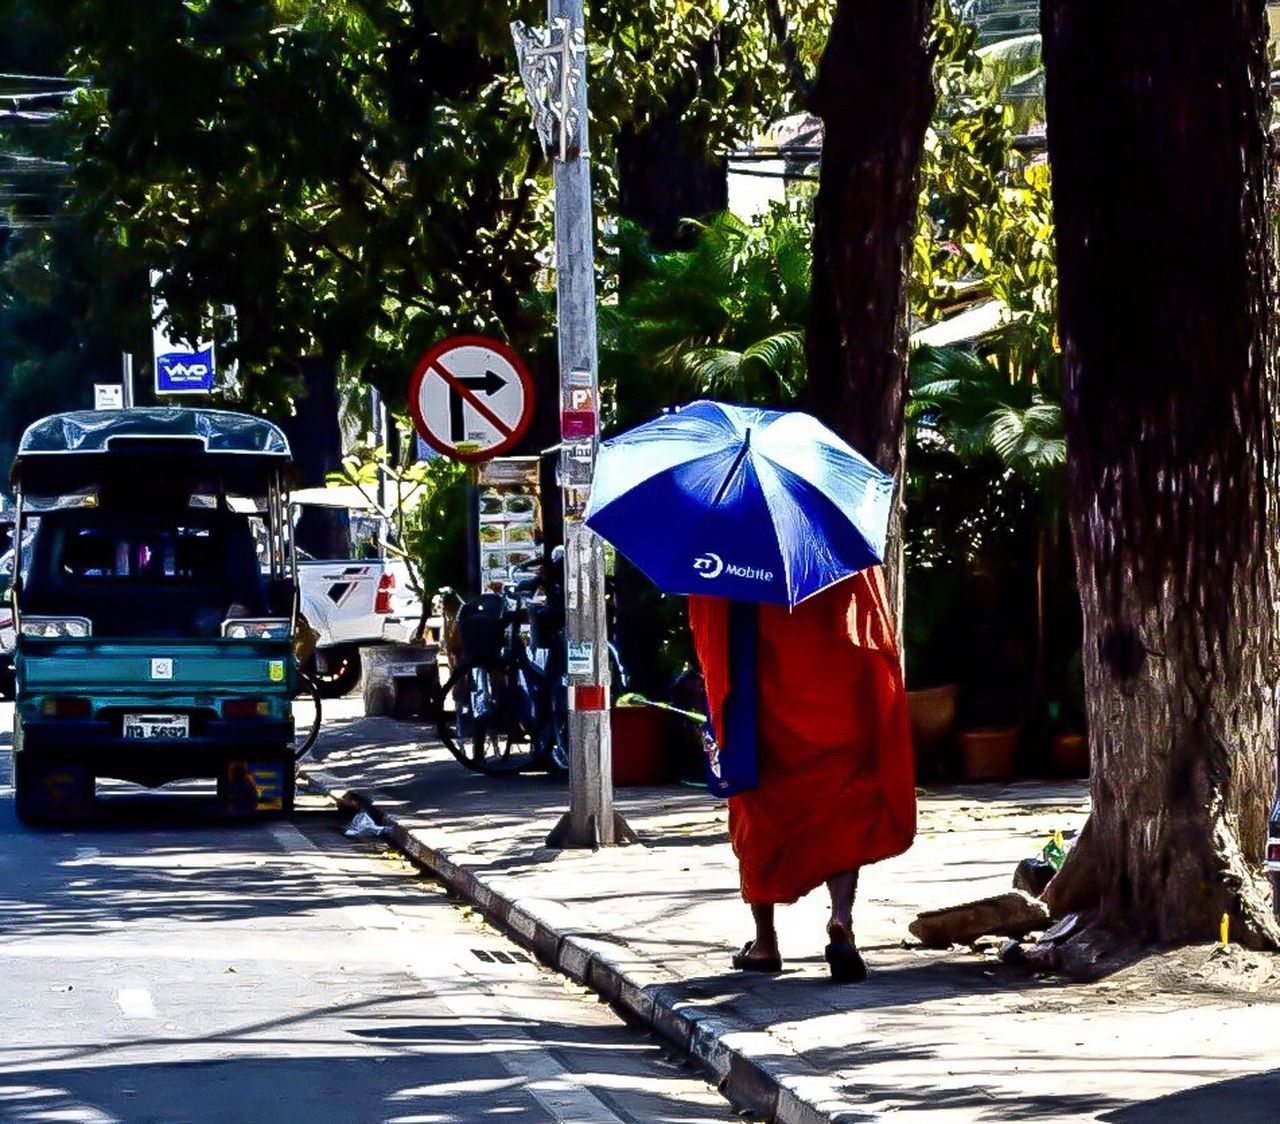 Ancien Bonze Real People Tree Rear View Transportation Outdoors Footpath City Urbanphotography Streetphotography ASIA Laos Vientiane 500px Instagram Lifestyles Nikon Road Monk